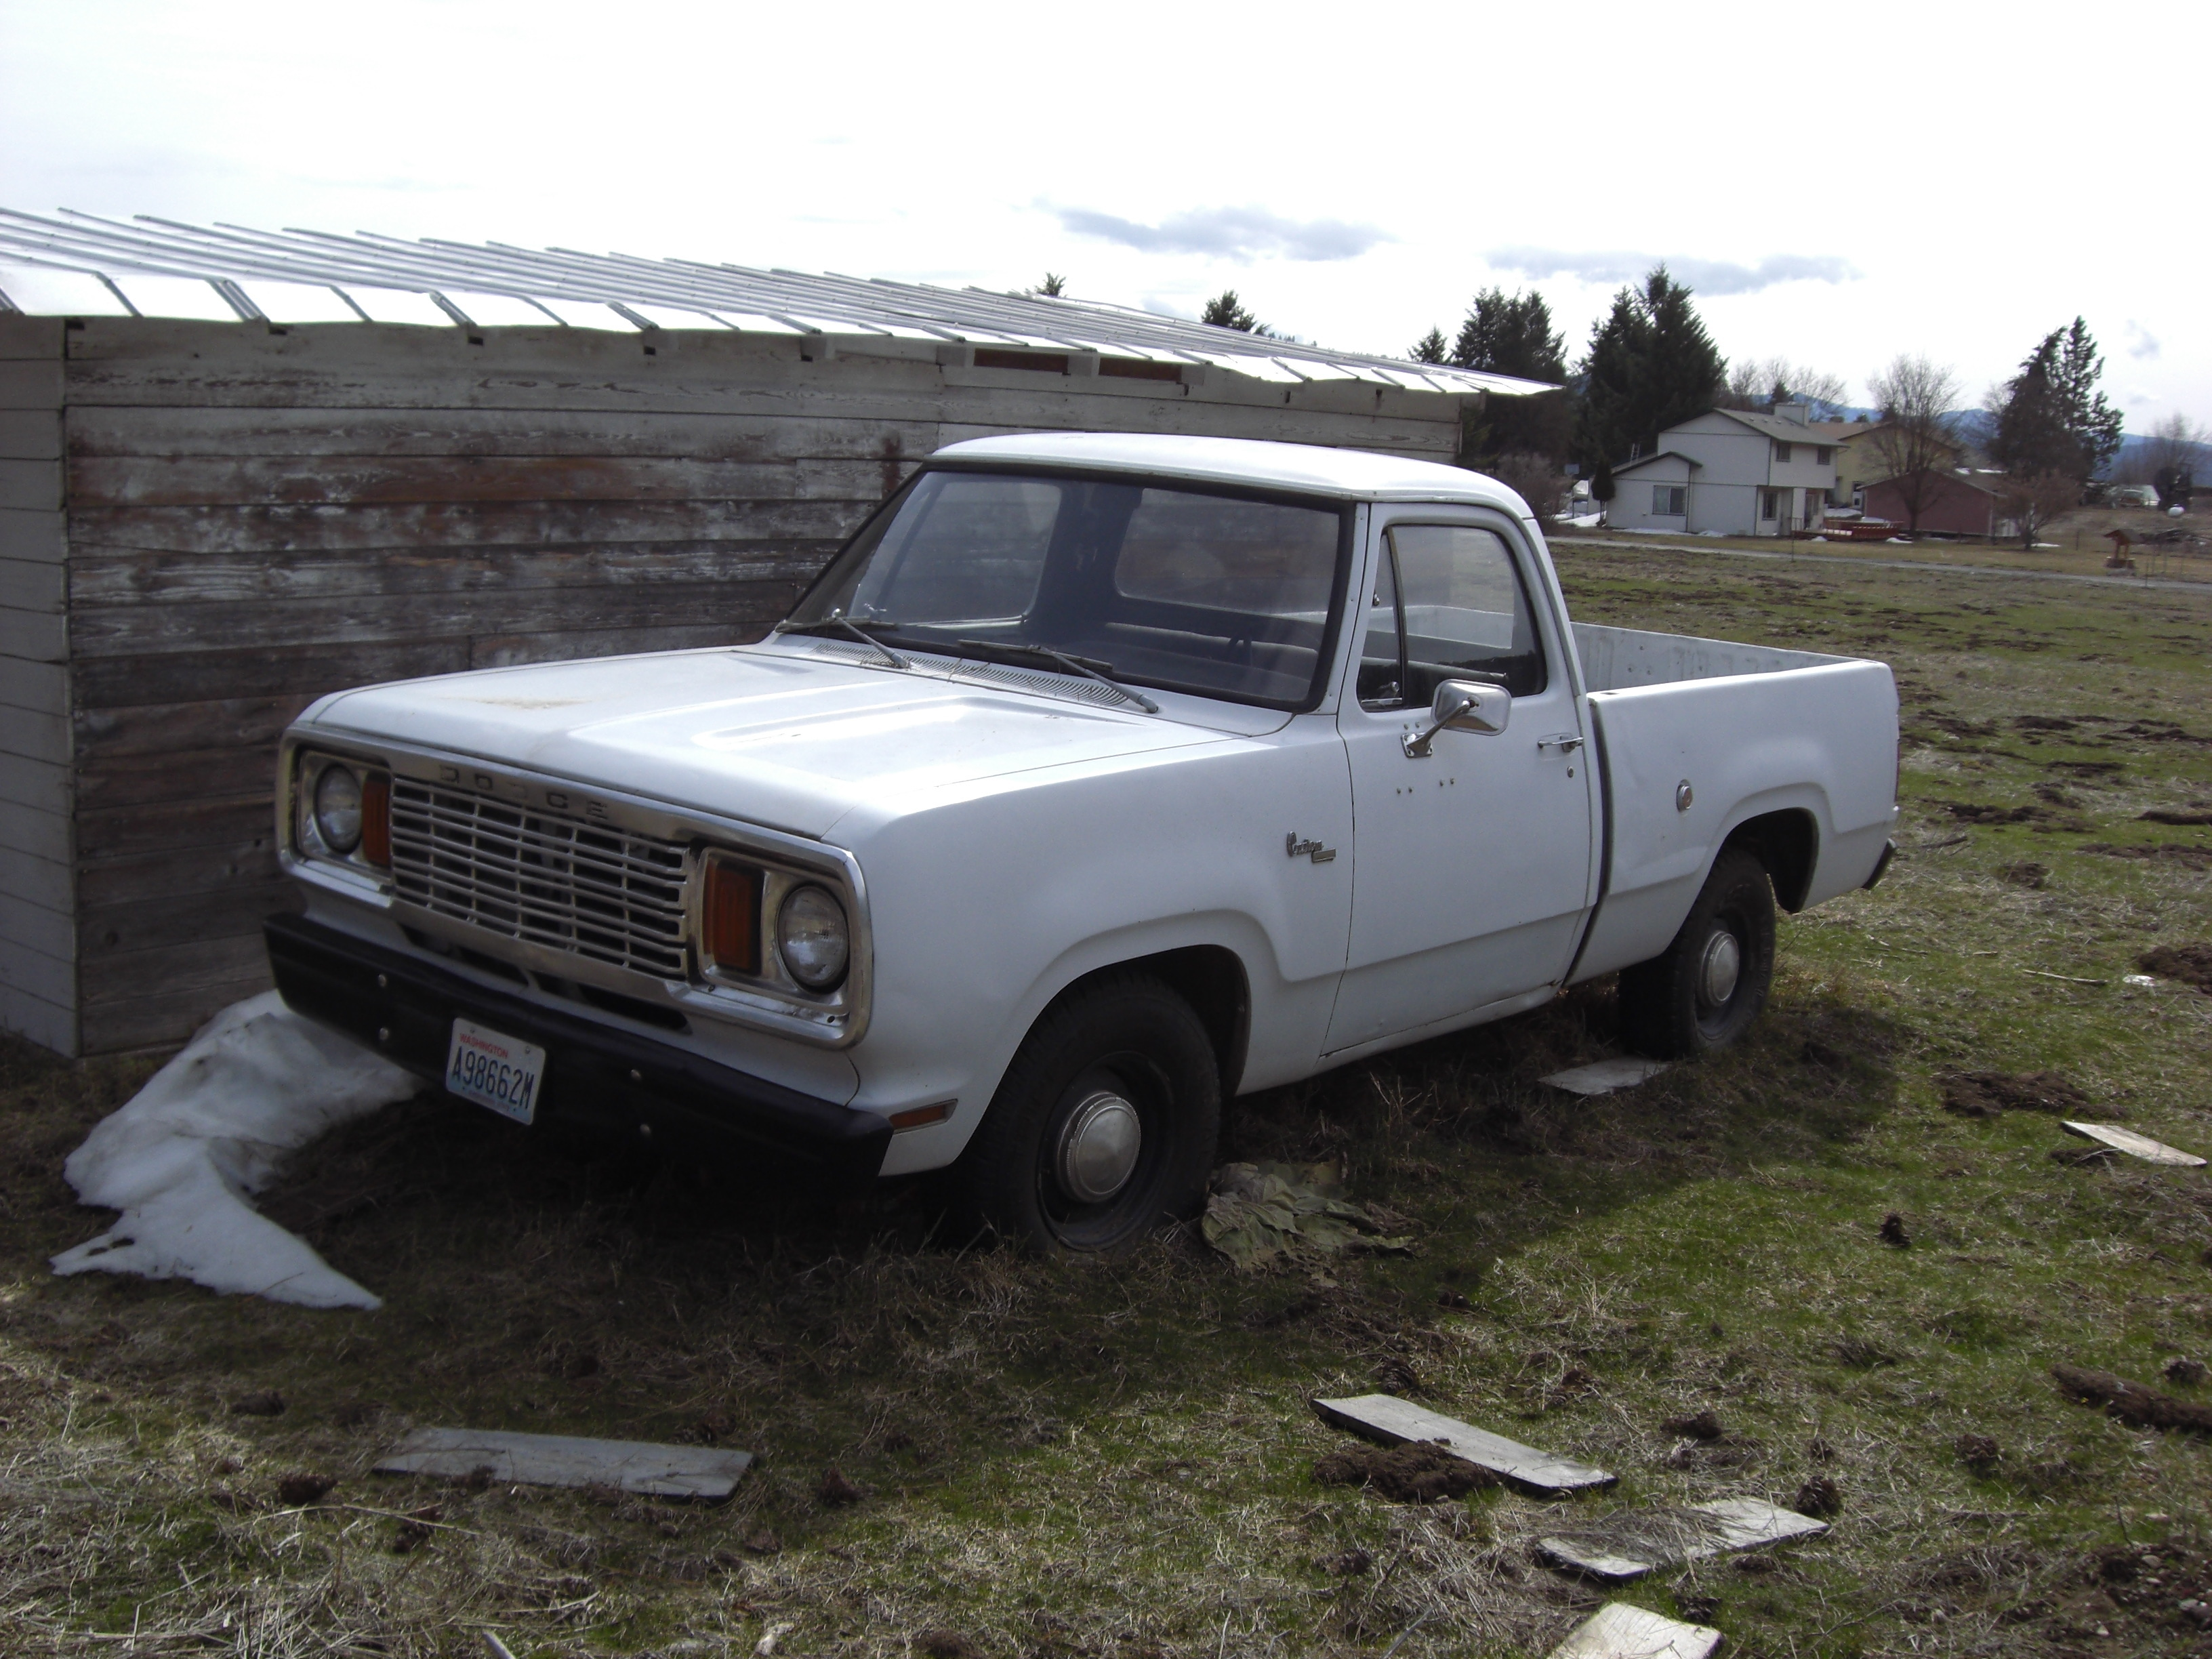 D10078's 1978 Dodge D150 Club Cab